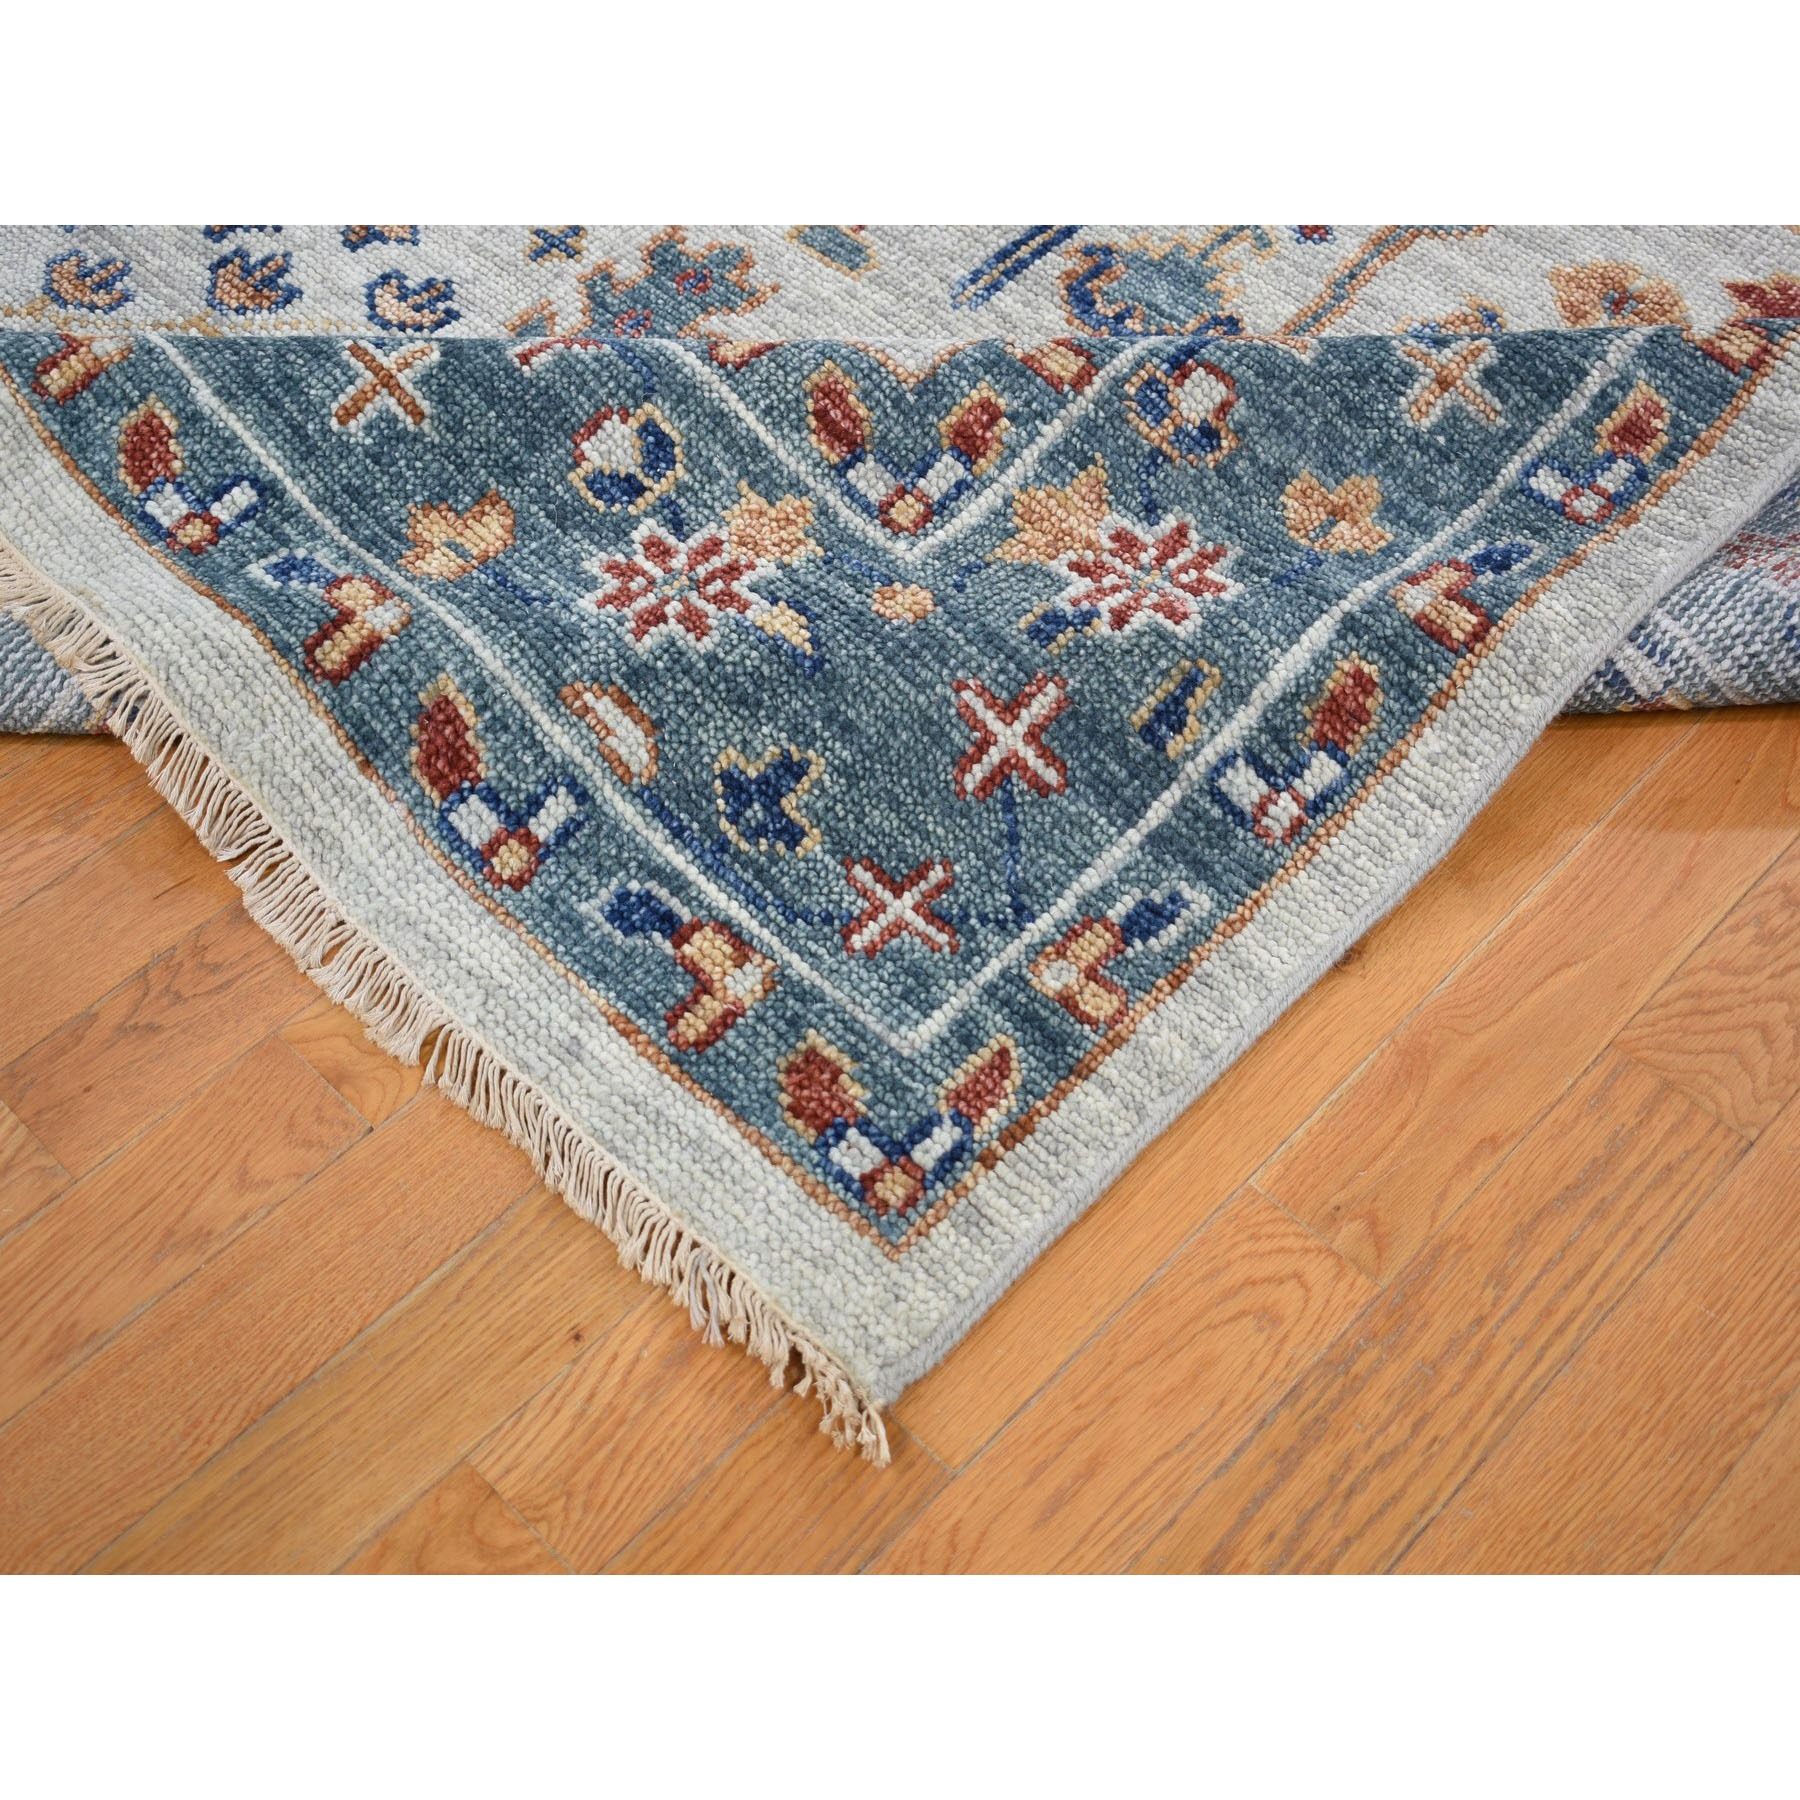 """10'x13'10"""" Supple Collection With Tree Design Soft wool Hand Knotted Oriental Rug"""